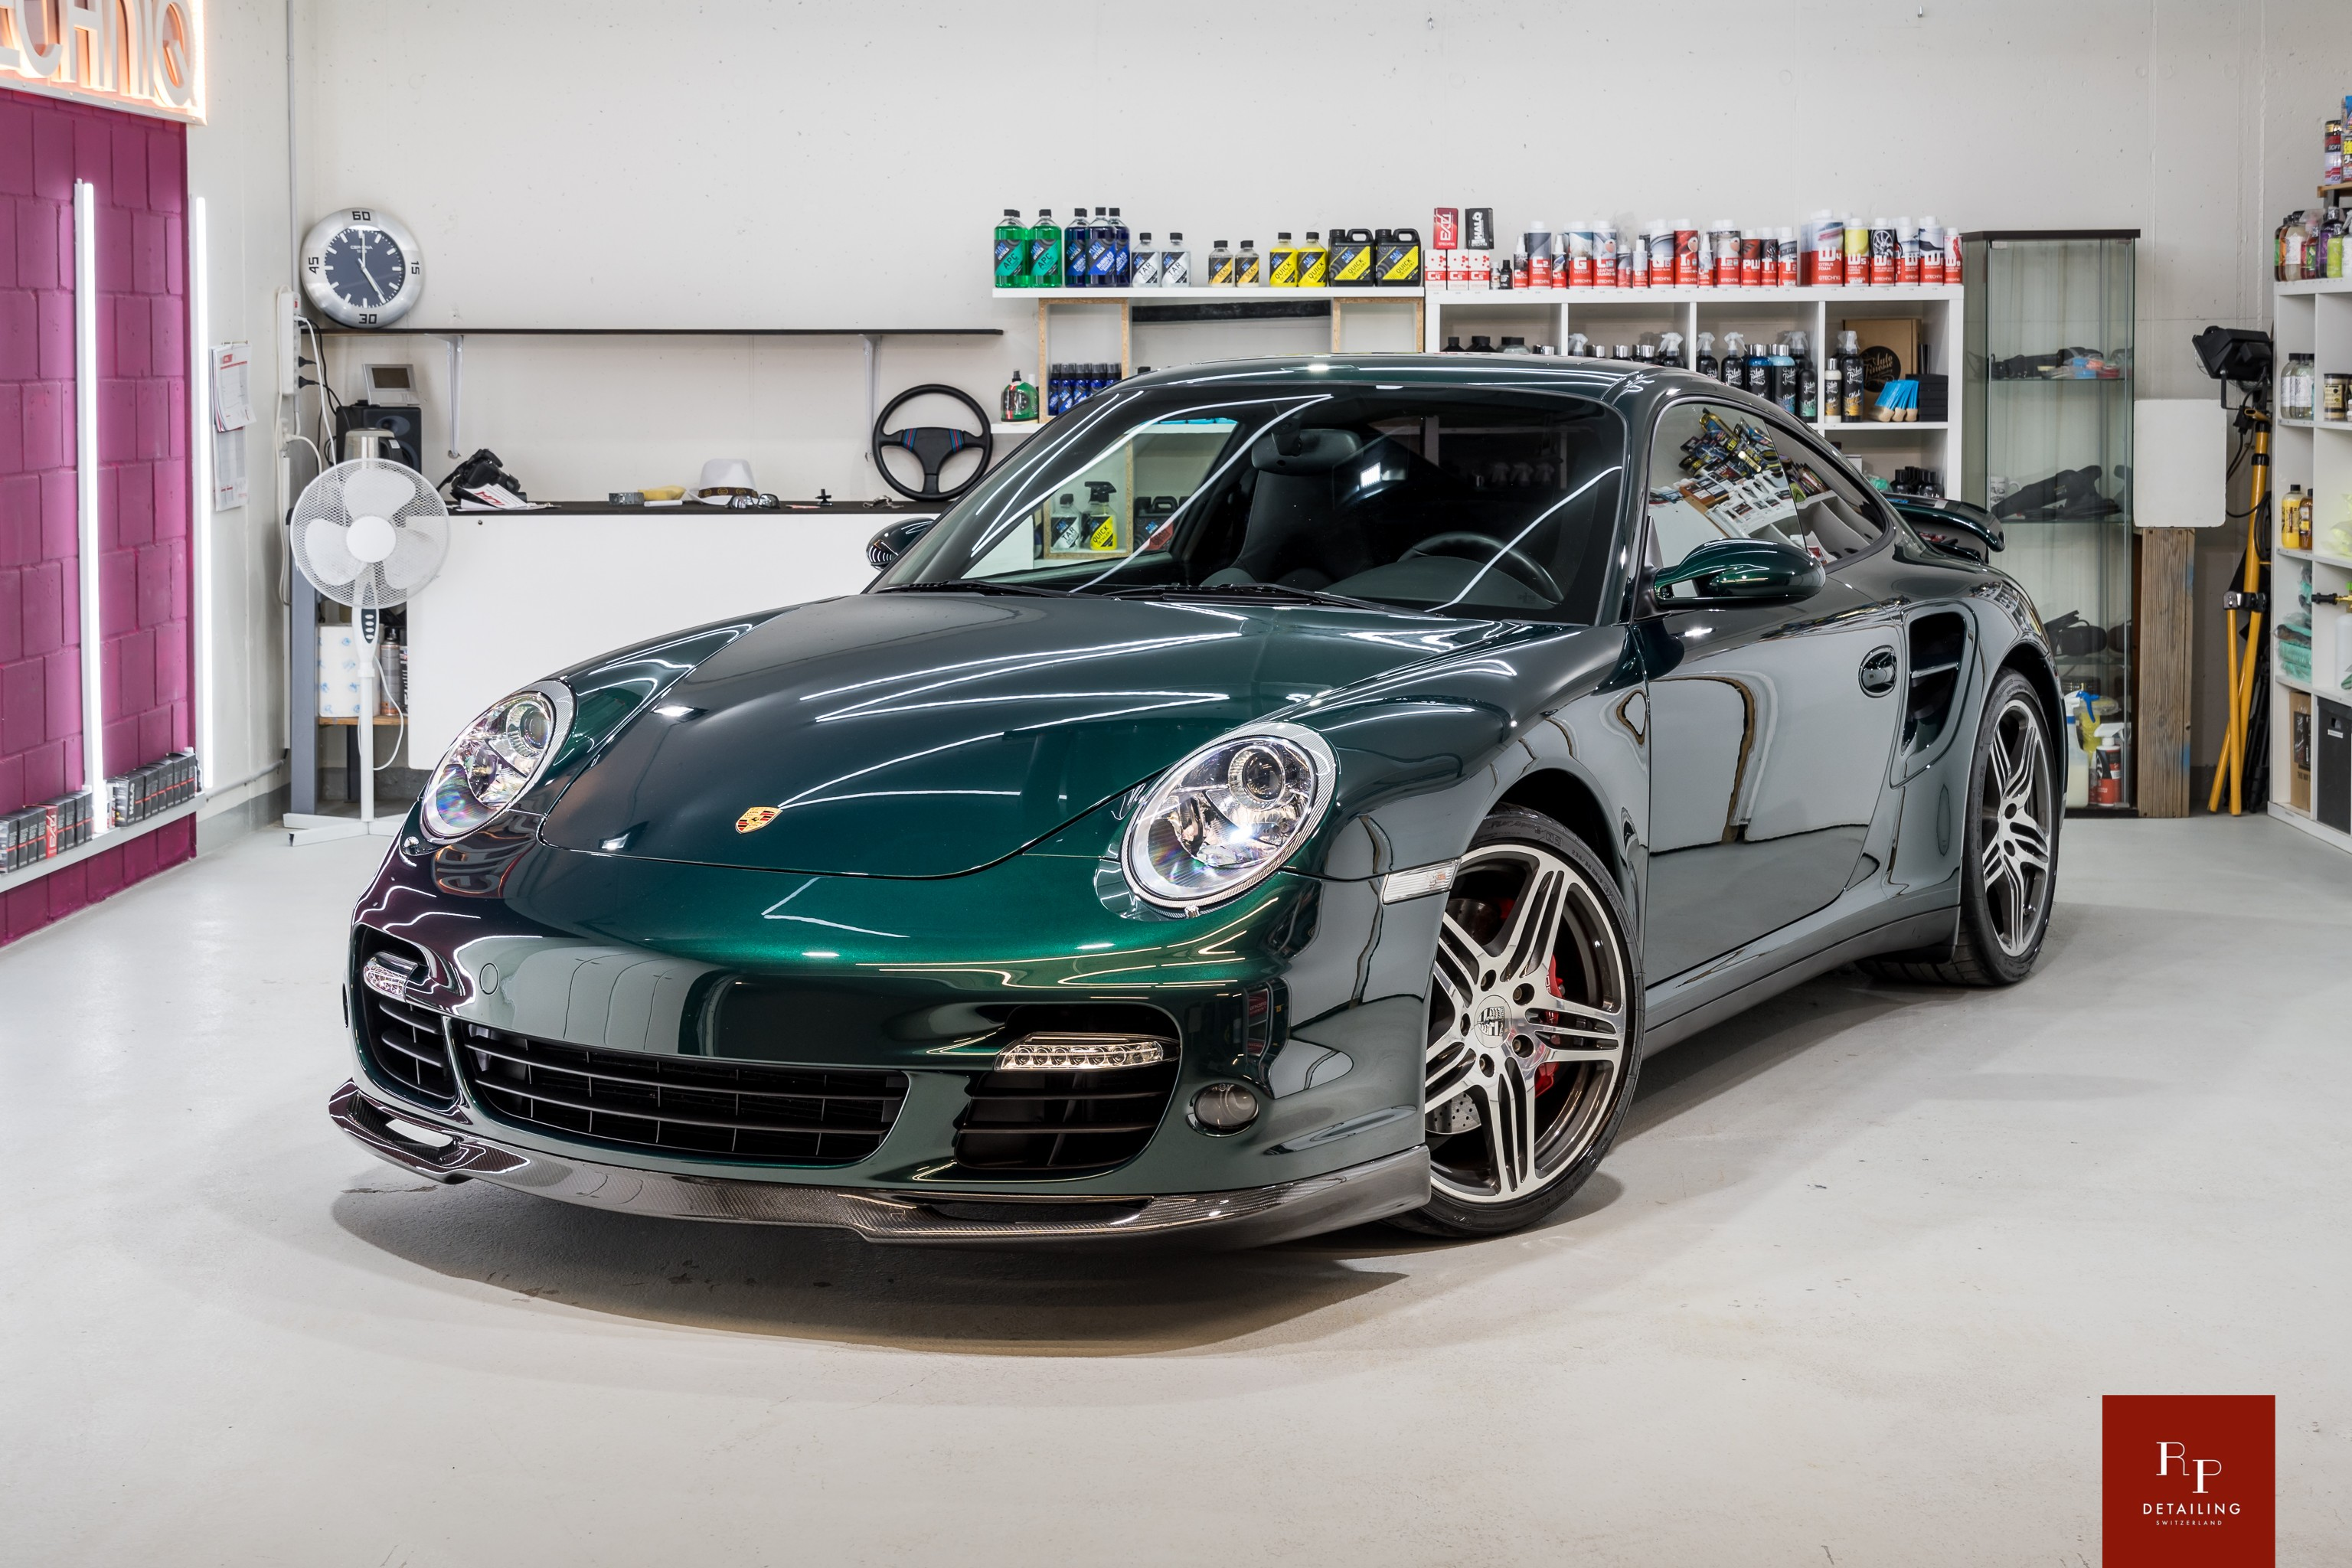 PROJECT ONE Porsche 997 Turbo by rp-detailing